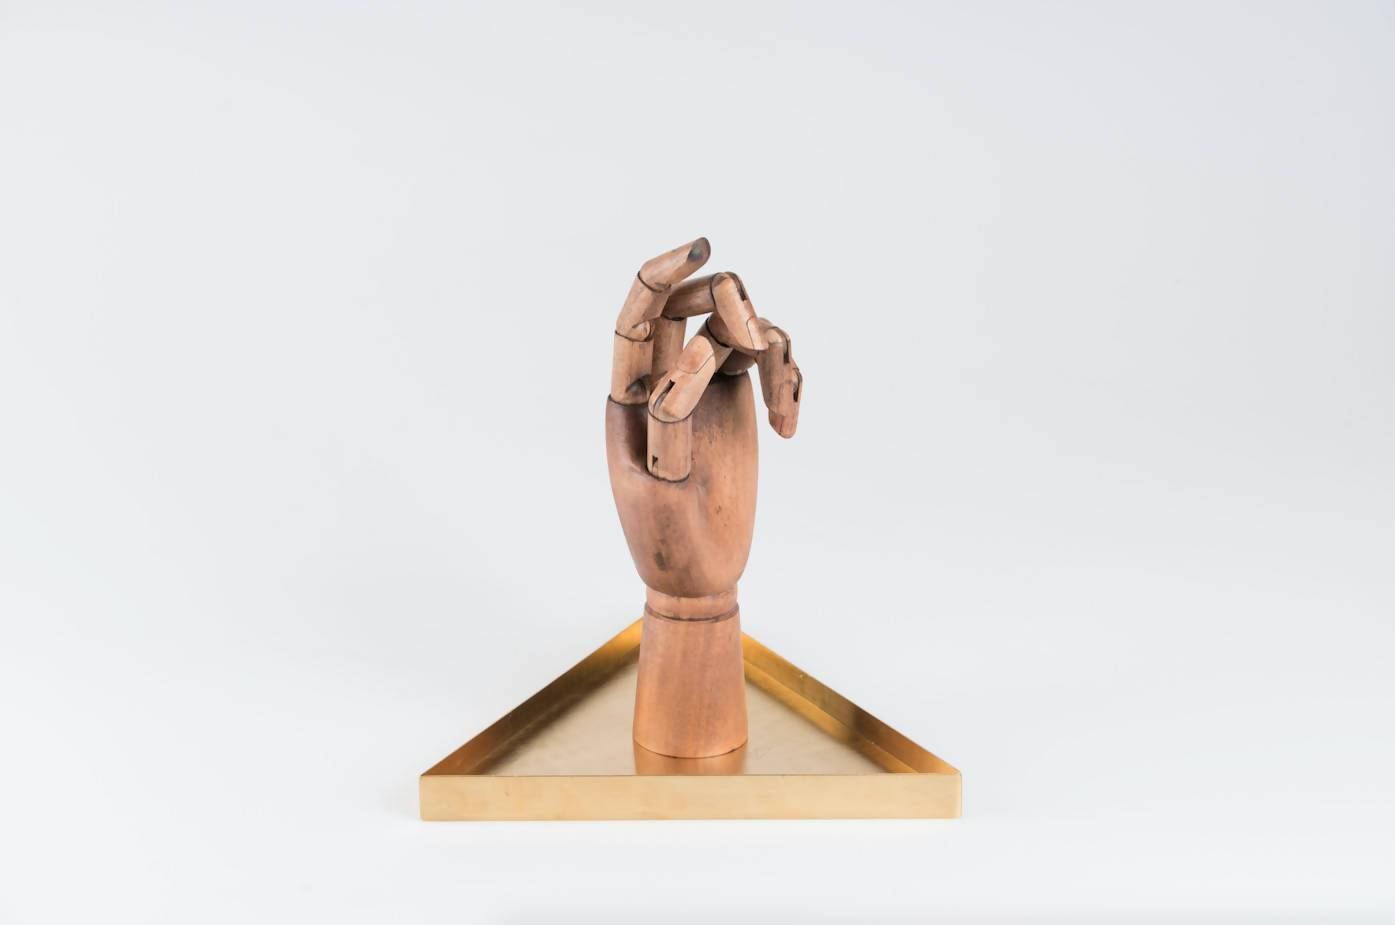 DOIY The Hand Jewellery Holder - Jewellery Holders - The Planet Collection - Naiise